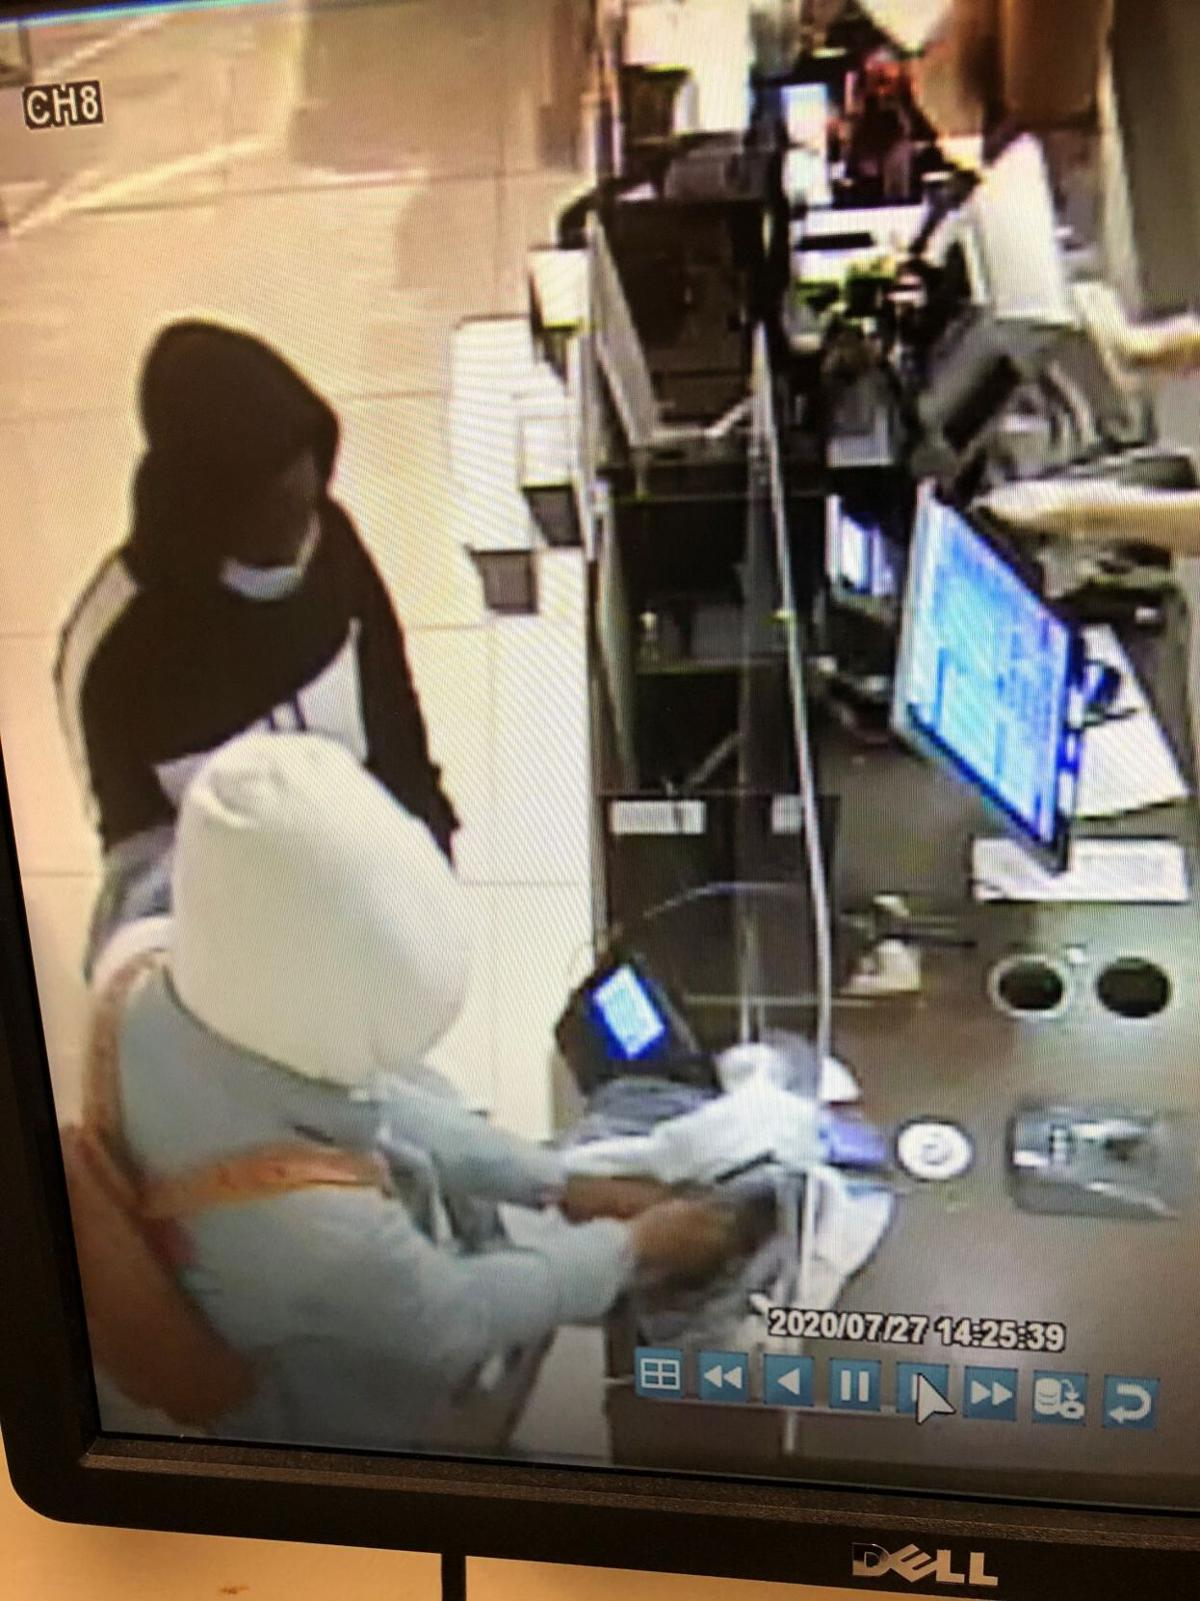 July 27 robbery suspects 1